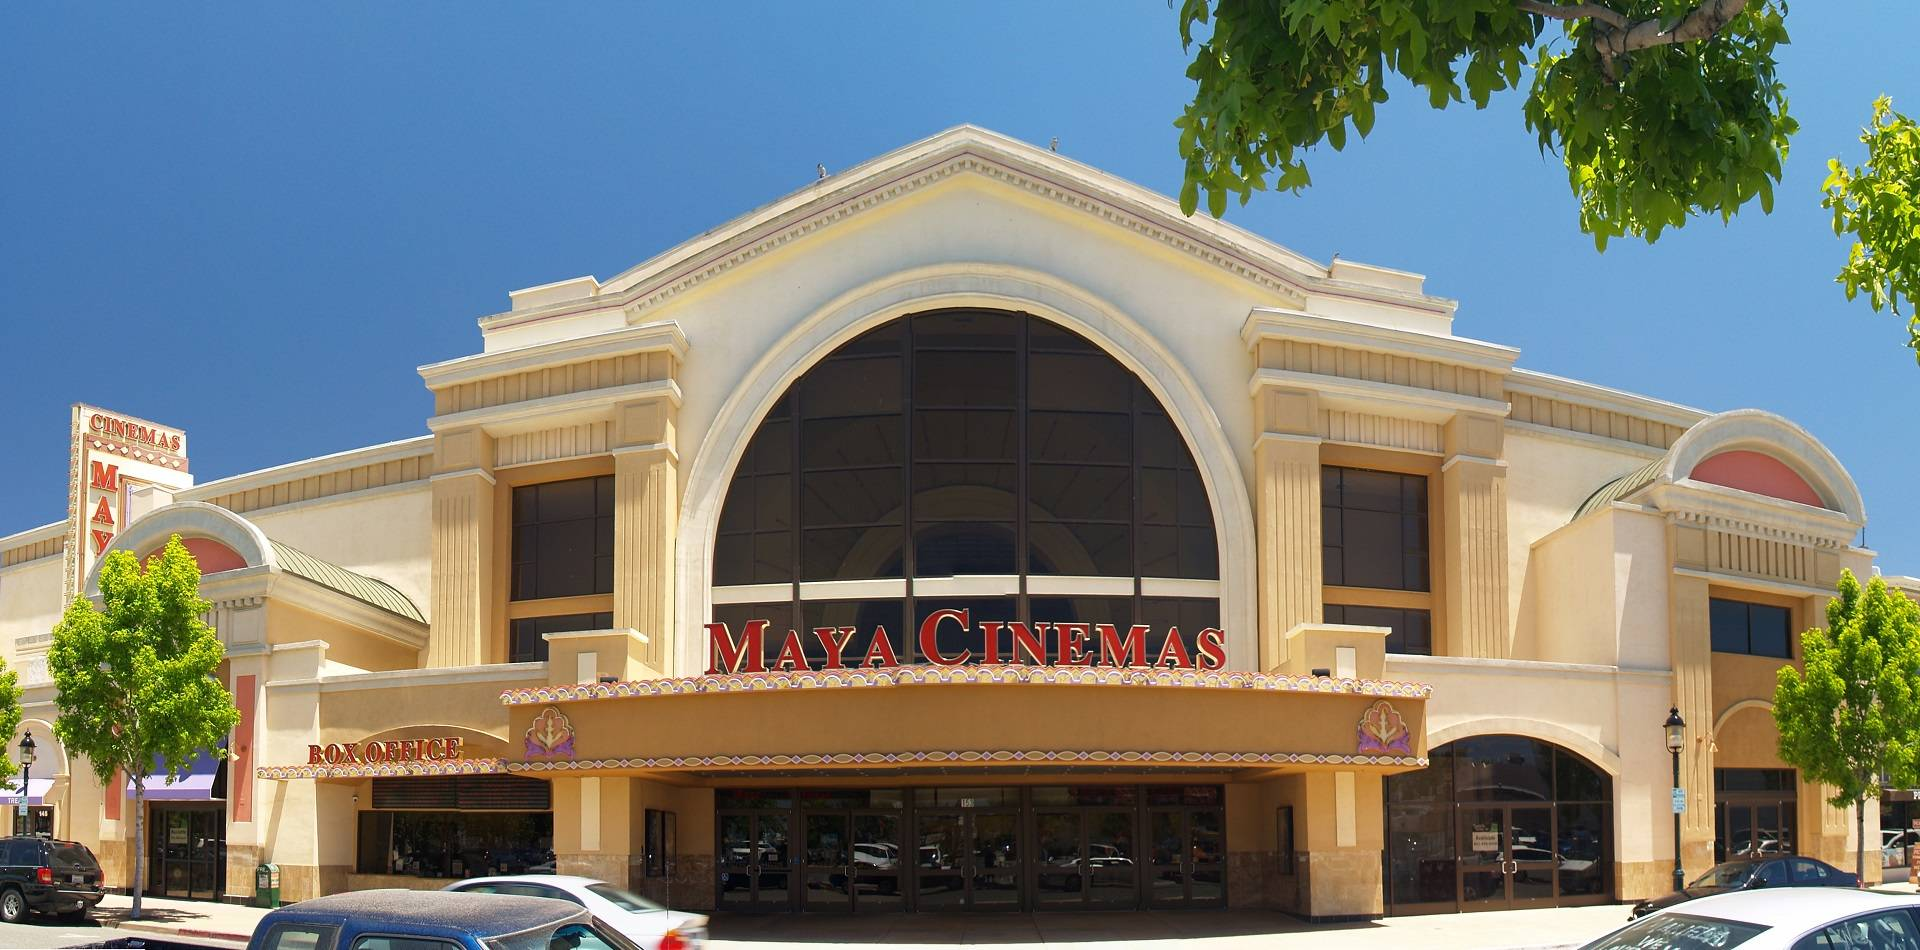 The Maya Cinemas in Salinas. Stephen Gough/Flickr